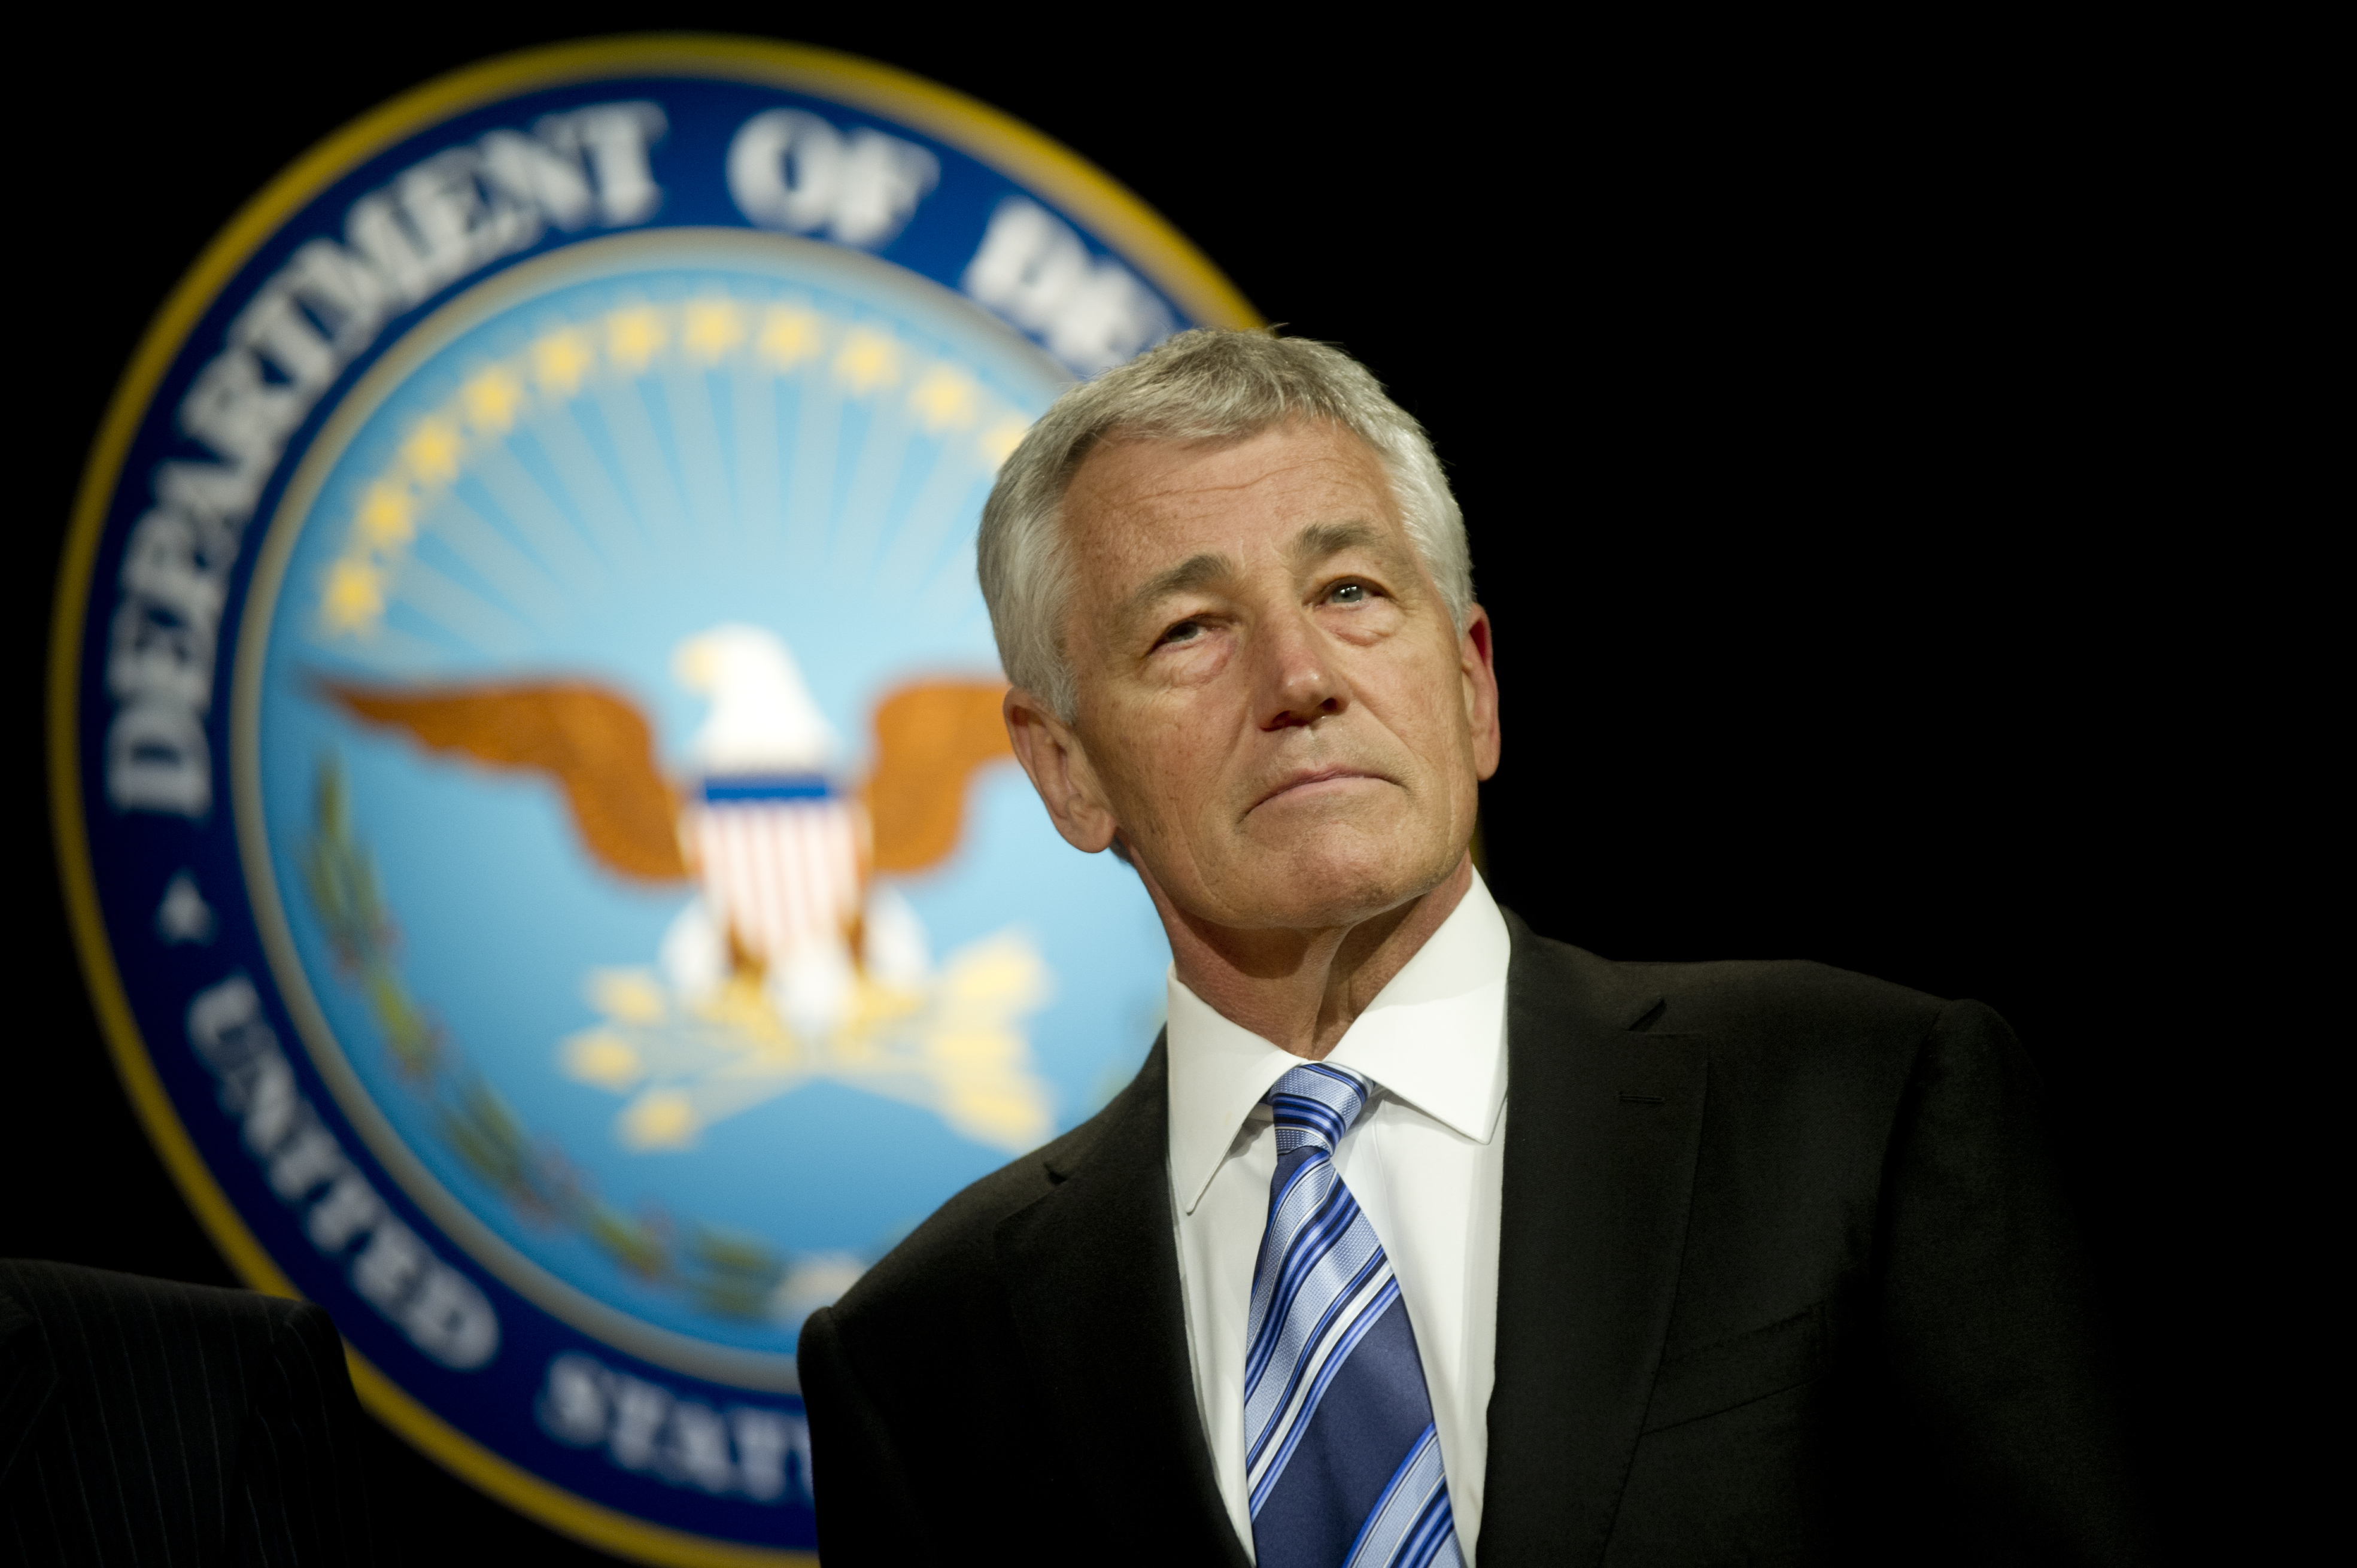 http://upload.wikimedia.org/wikipedia/commons/1/17/Defense_Secretary_Chuck_Hagel_stand_during_the_playing_of_the_service_melodies_after_a_welcoming_and_swearing_in_ceremony_at_the_Pentagon.jpg